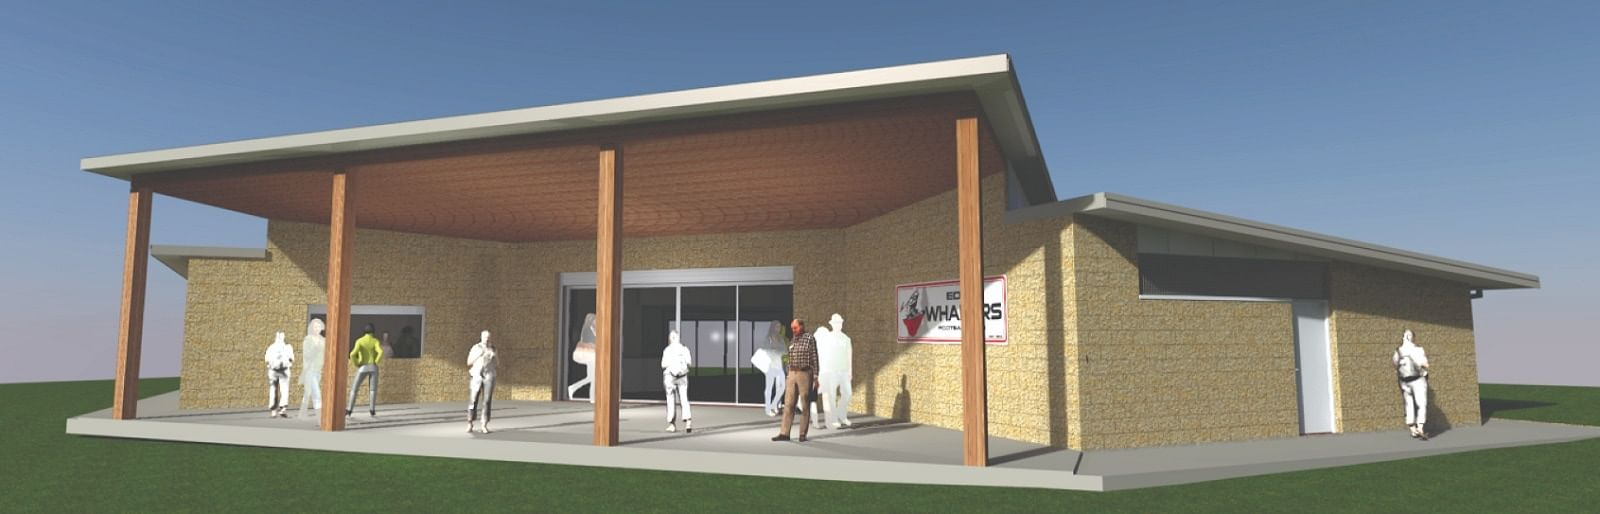 Construction has commenced on the new pavilion building at Eden's Barclay Street Sporting Complex.